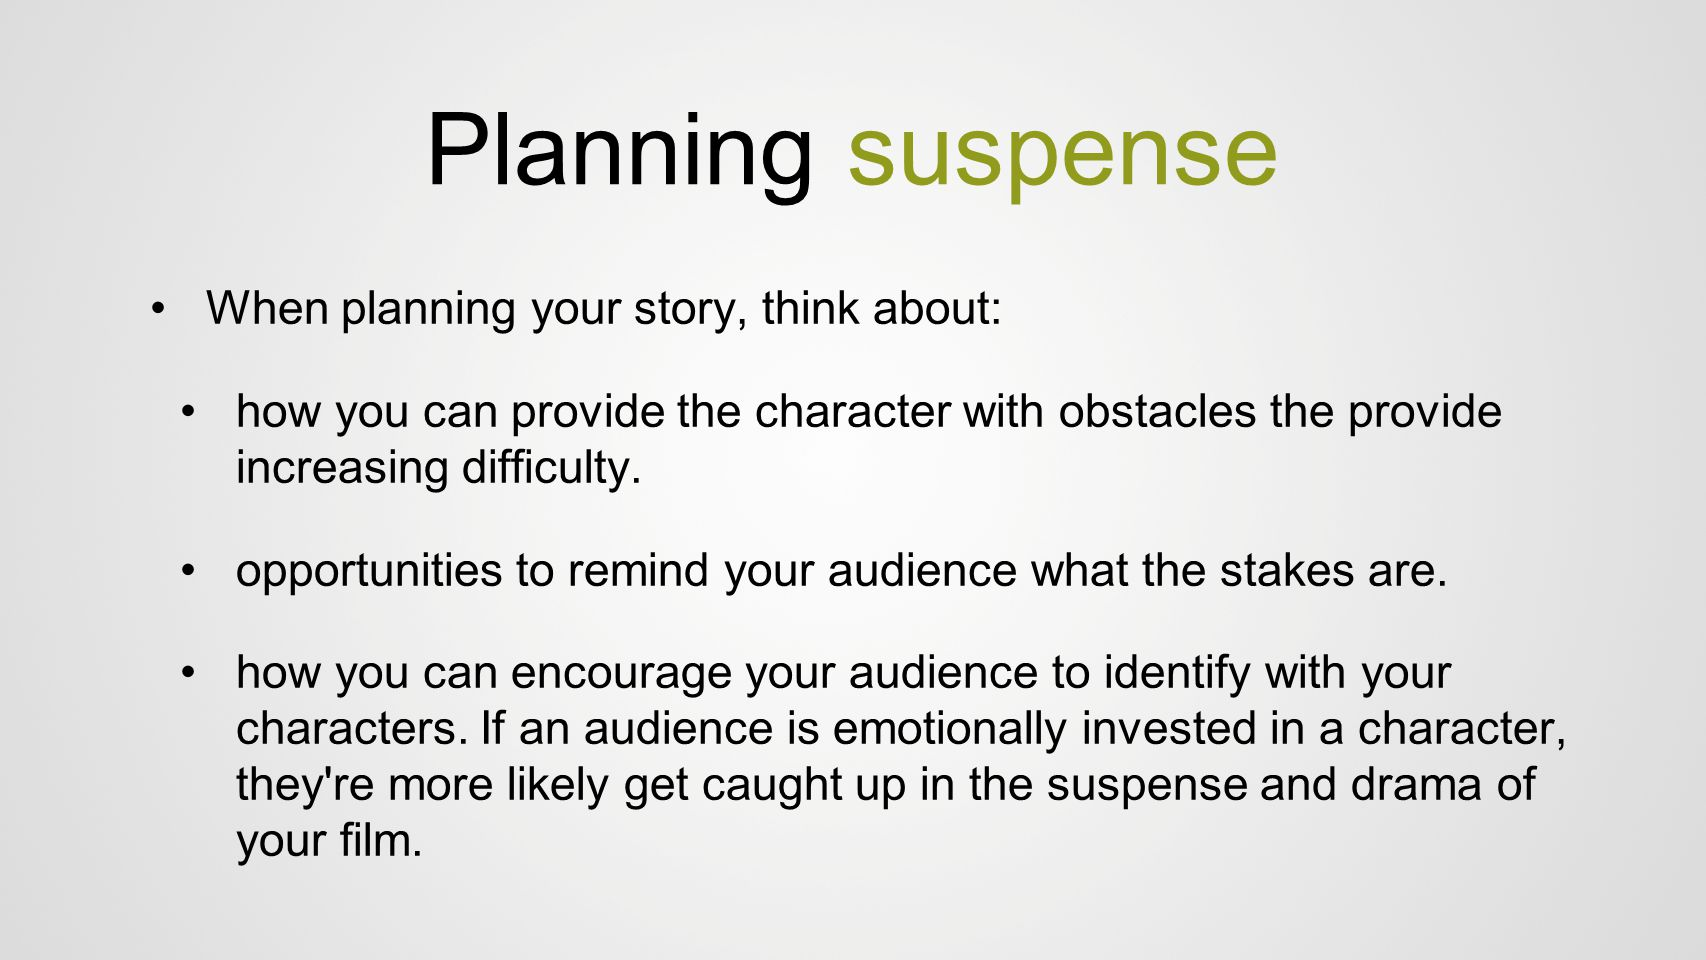 Planning suspense When planning your story, think about: how you can provide the character with obstacles the provide increasing difficulty. opportuni